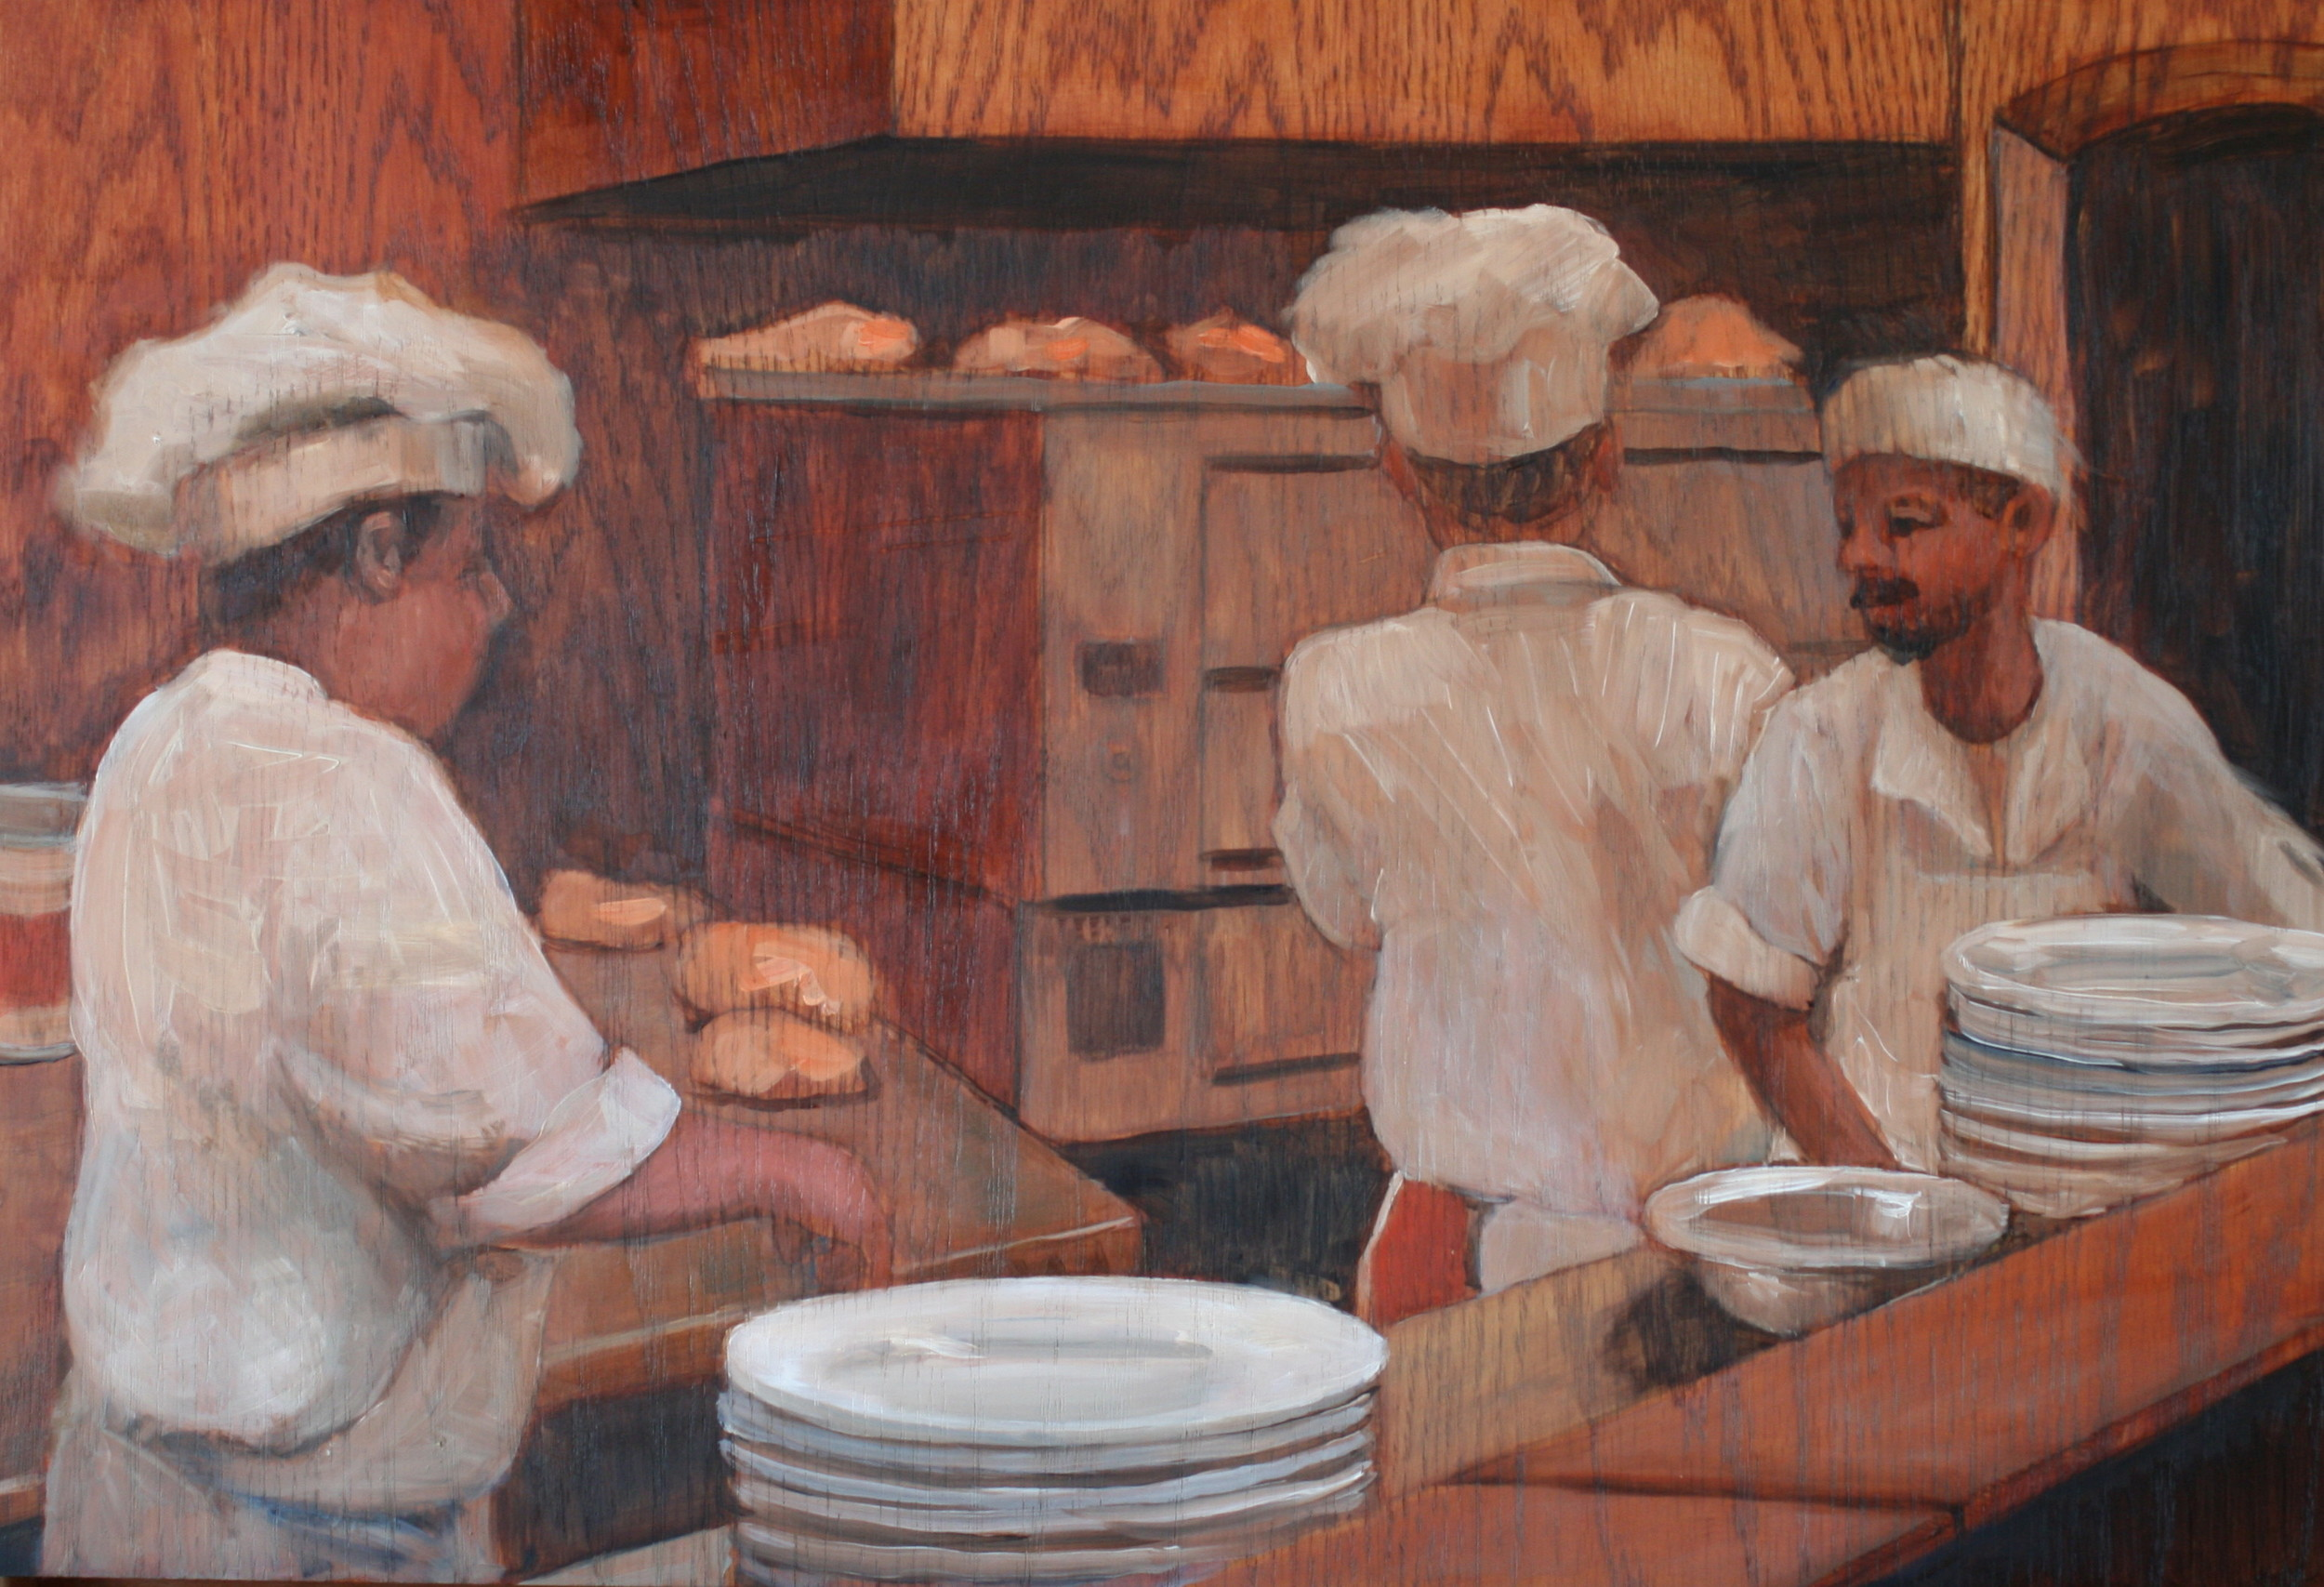 The Bread Bakers